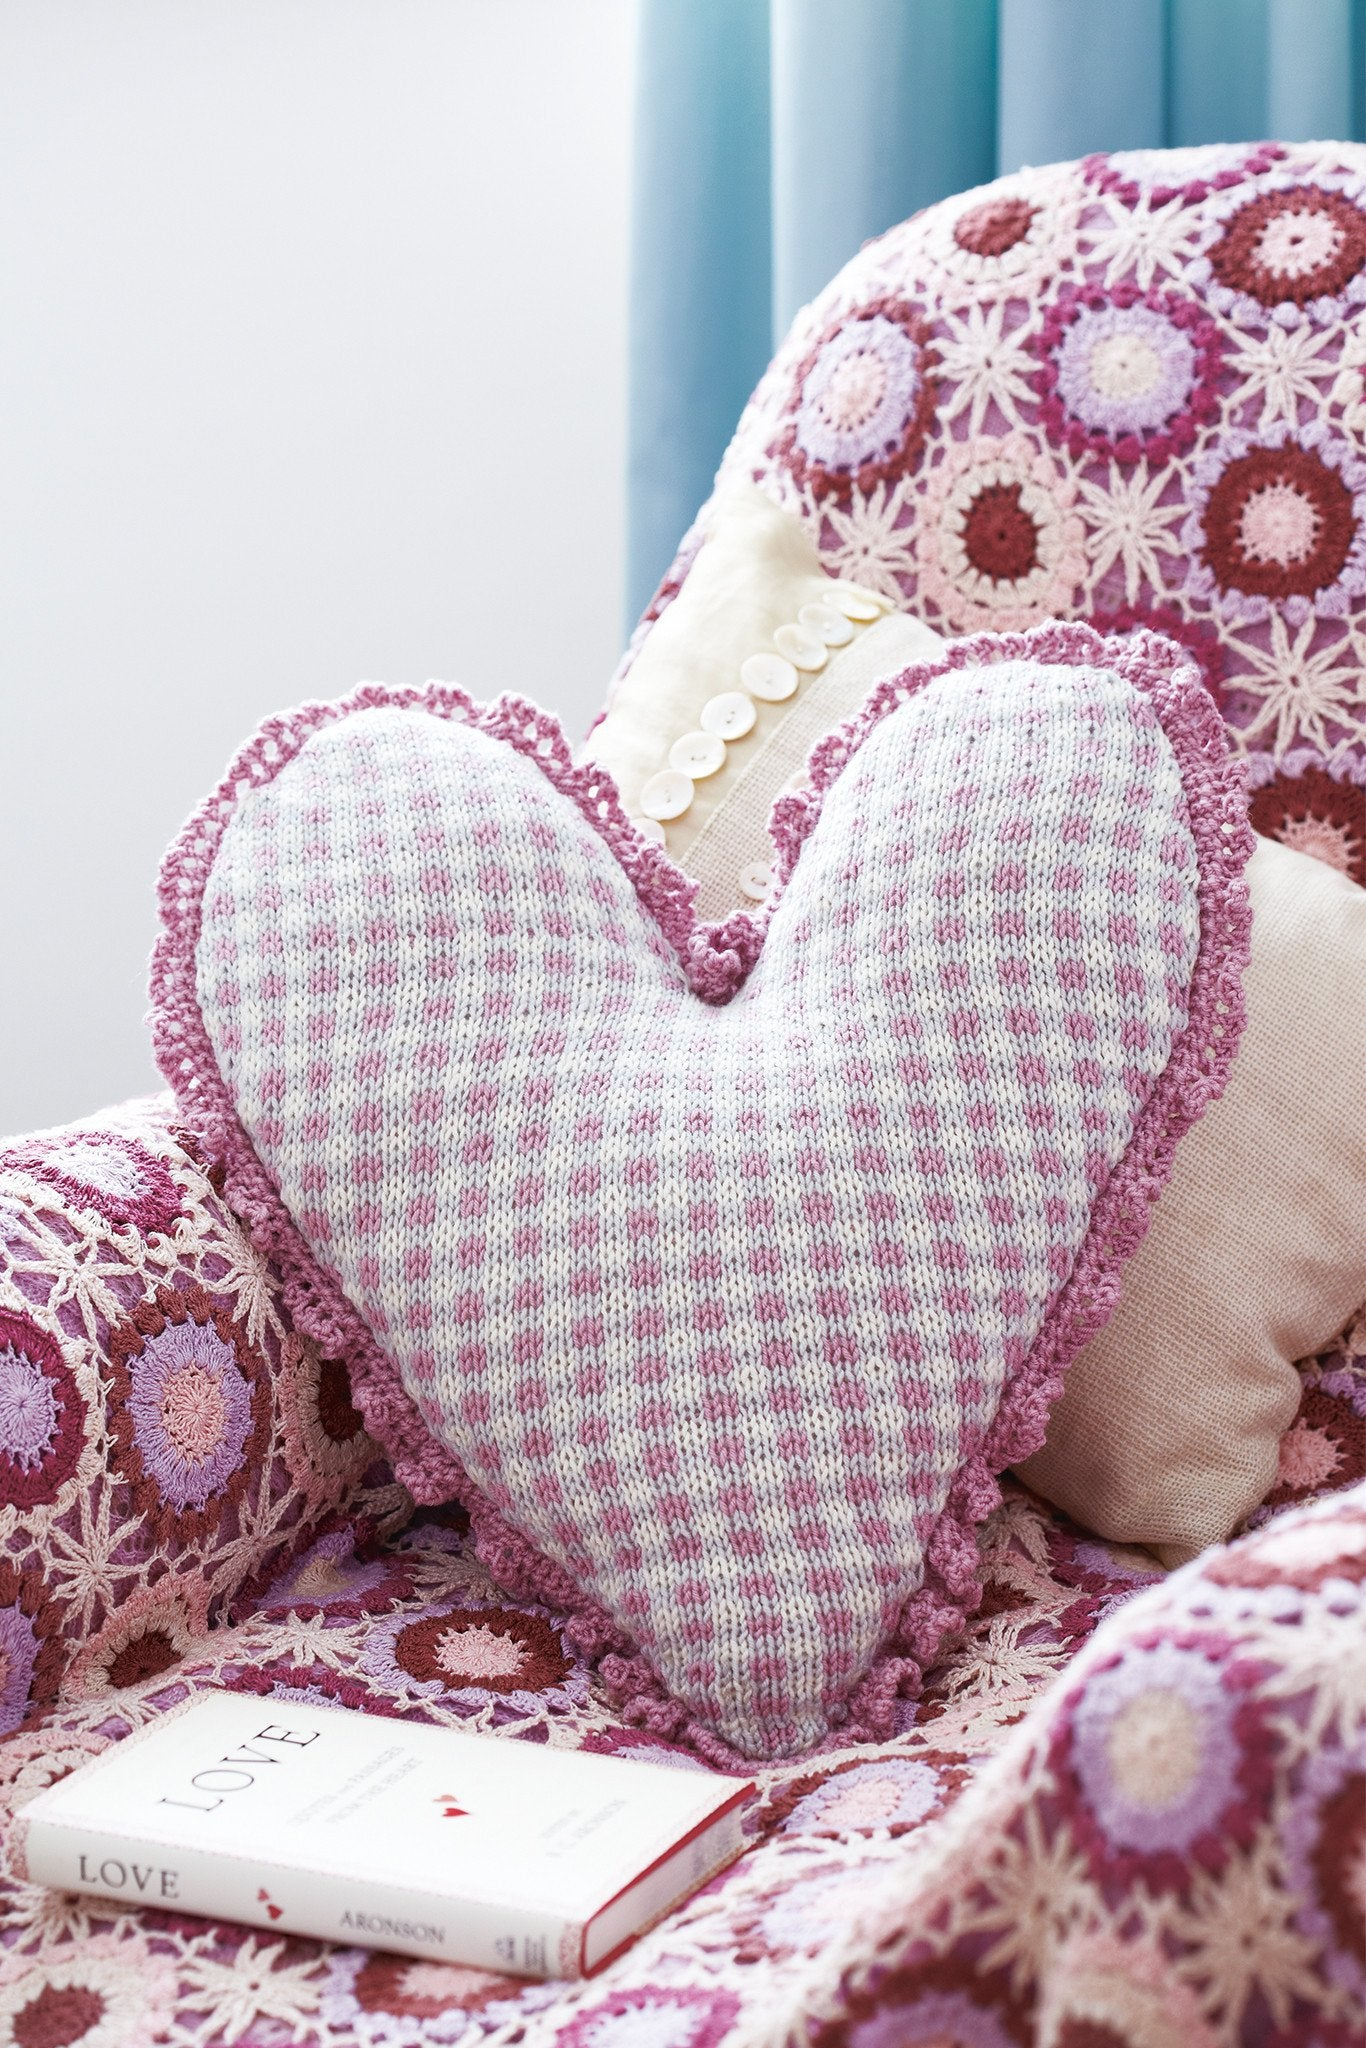 Checked heart cushion cover knitting pattern the knitting network checked heart cushion cover knitting pattern the knitting network bankloansurffo Gallery